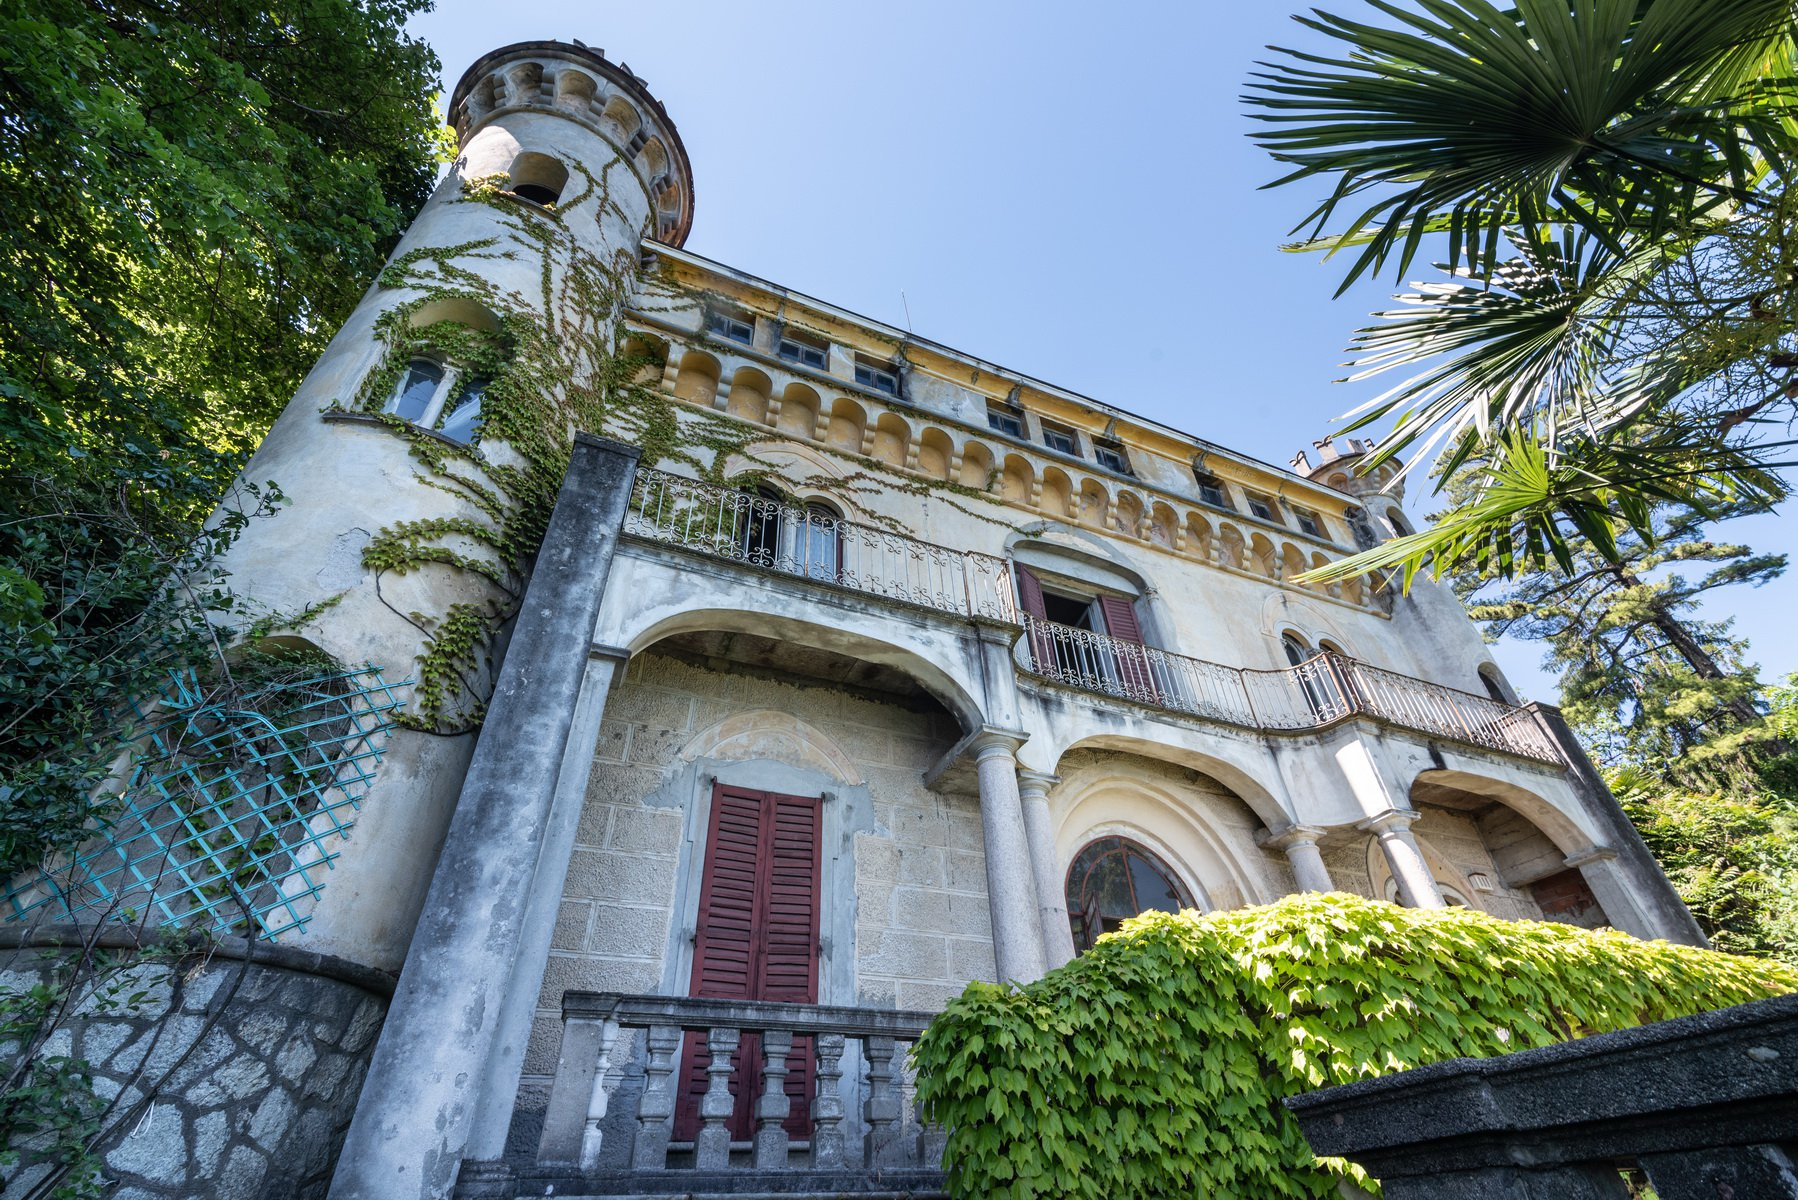 Castle for sale in Stresa on Lake Maggiore - external wall